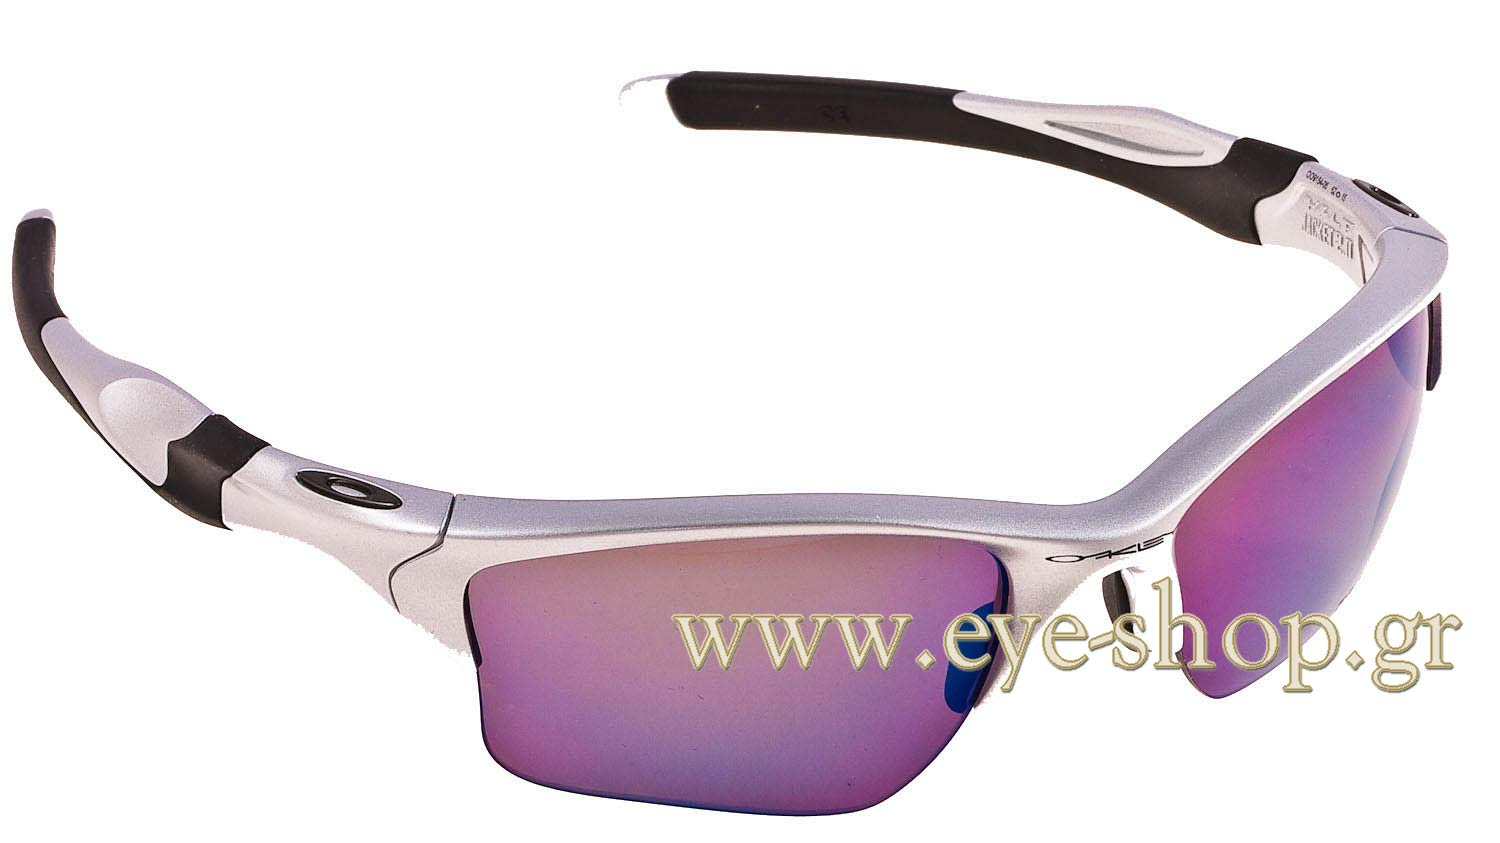 4062d12806 SUNGLASSES Oakley Half Jacket 2.0 XL 9154 06 Silver - G30 iridium Polarized